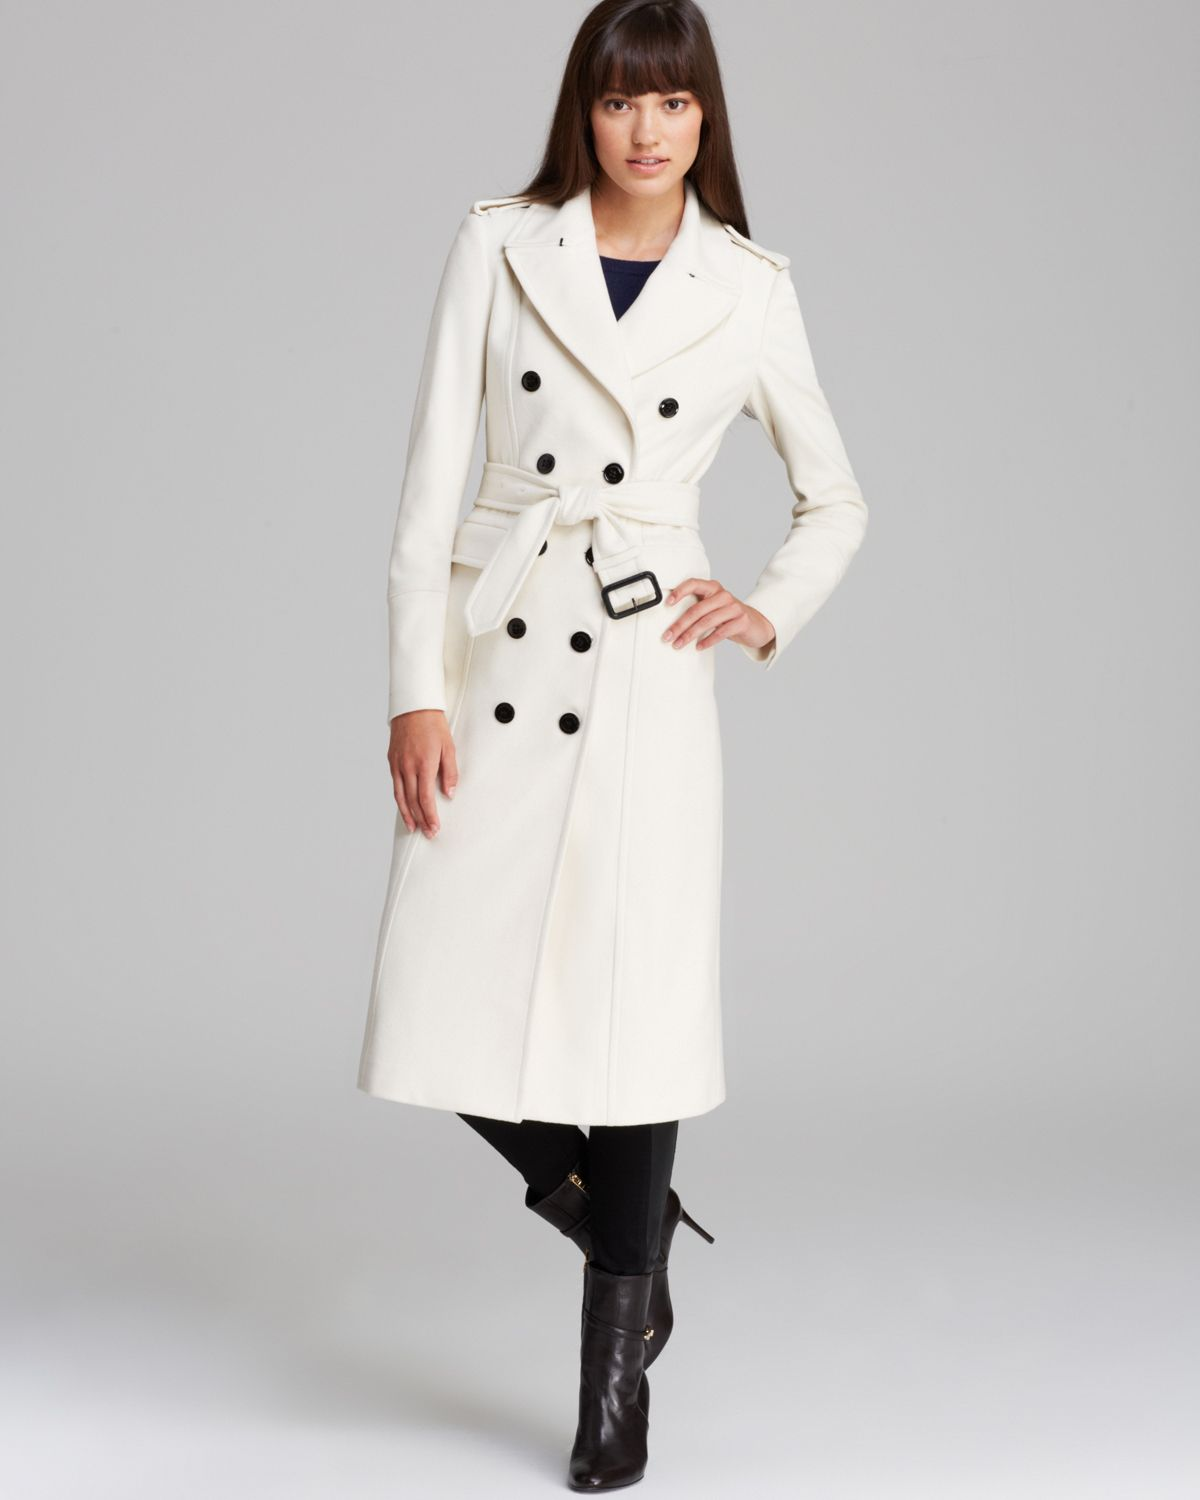 Womens white winter coat